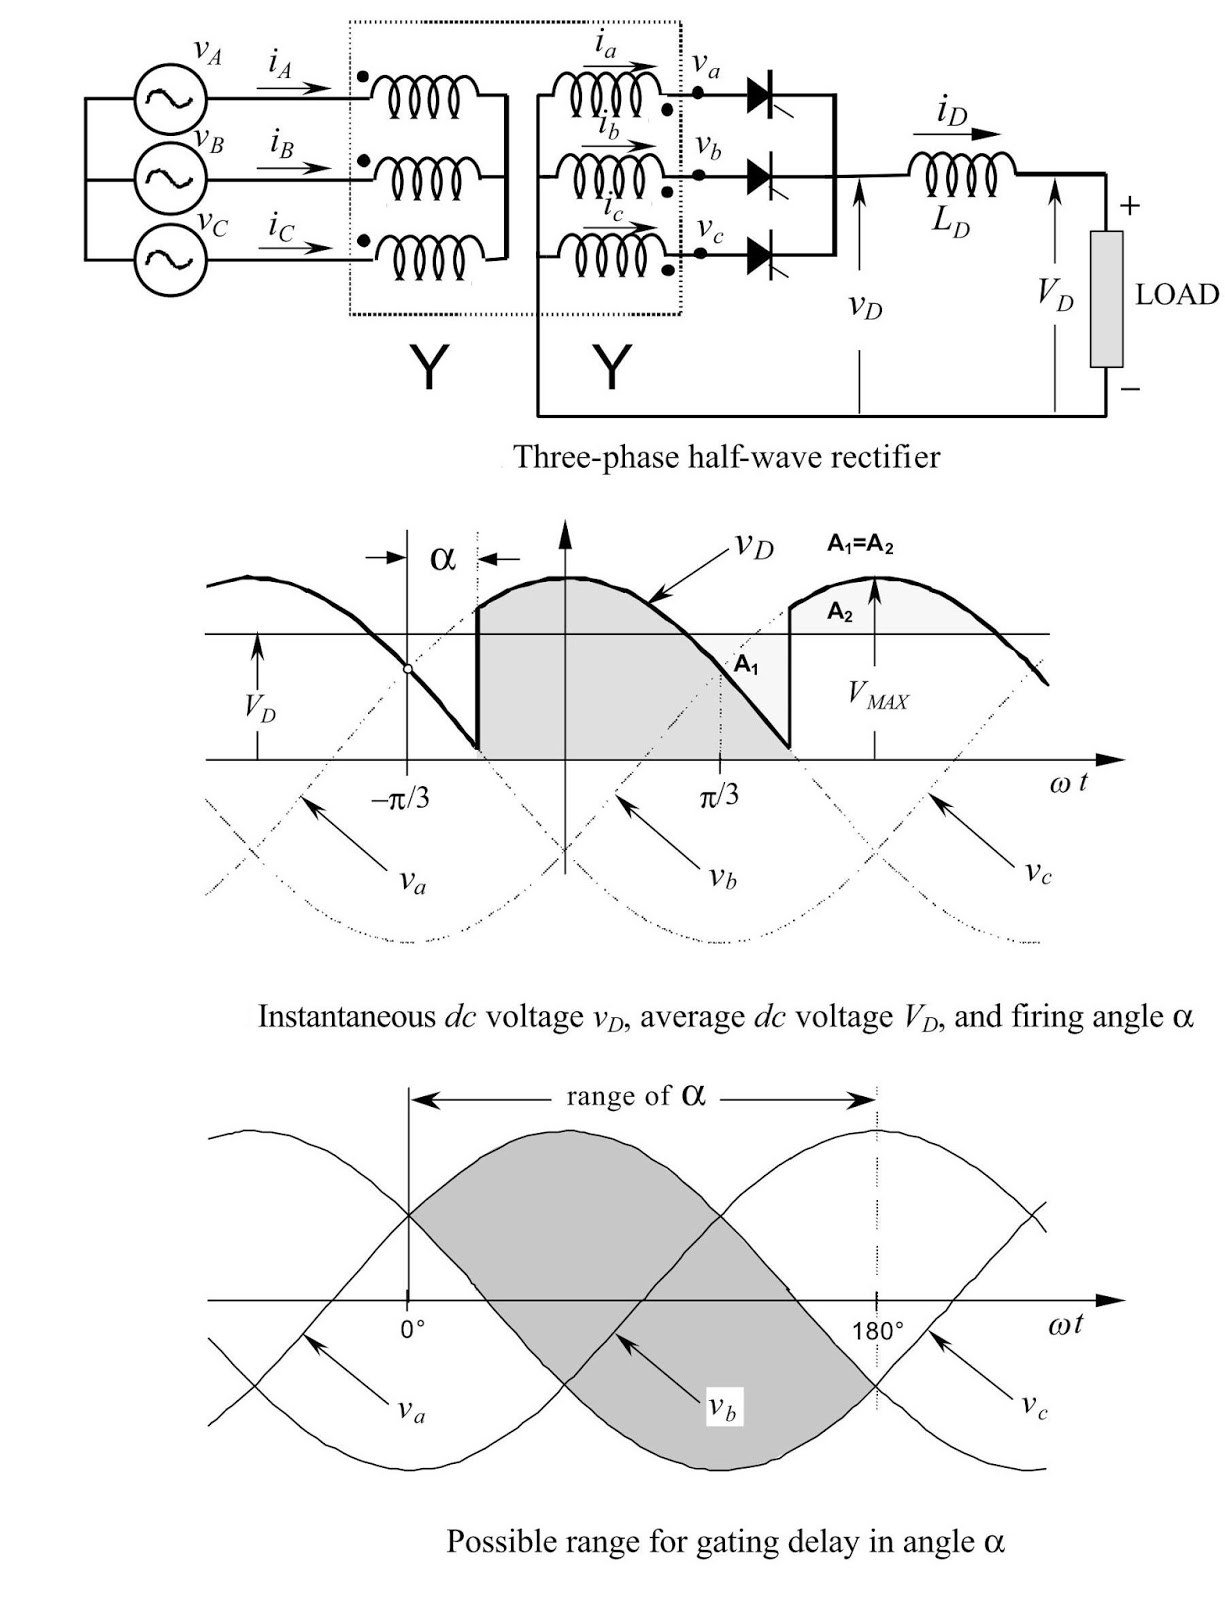 Flamingidea Controlled Rectifier Types And Description The Full Wave Averaging Filter In Such A Case Begins To Work As An Inverter Load Needs Have Capability Generate Power Reversal By Reversing Its Dc